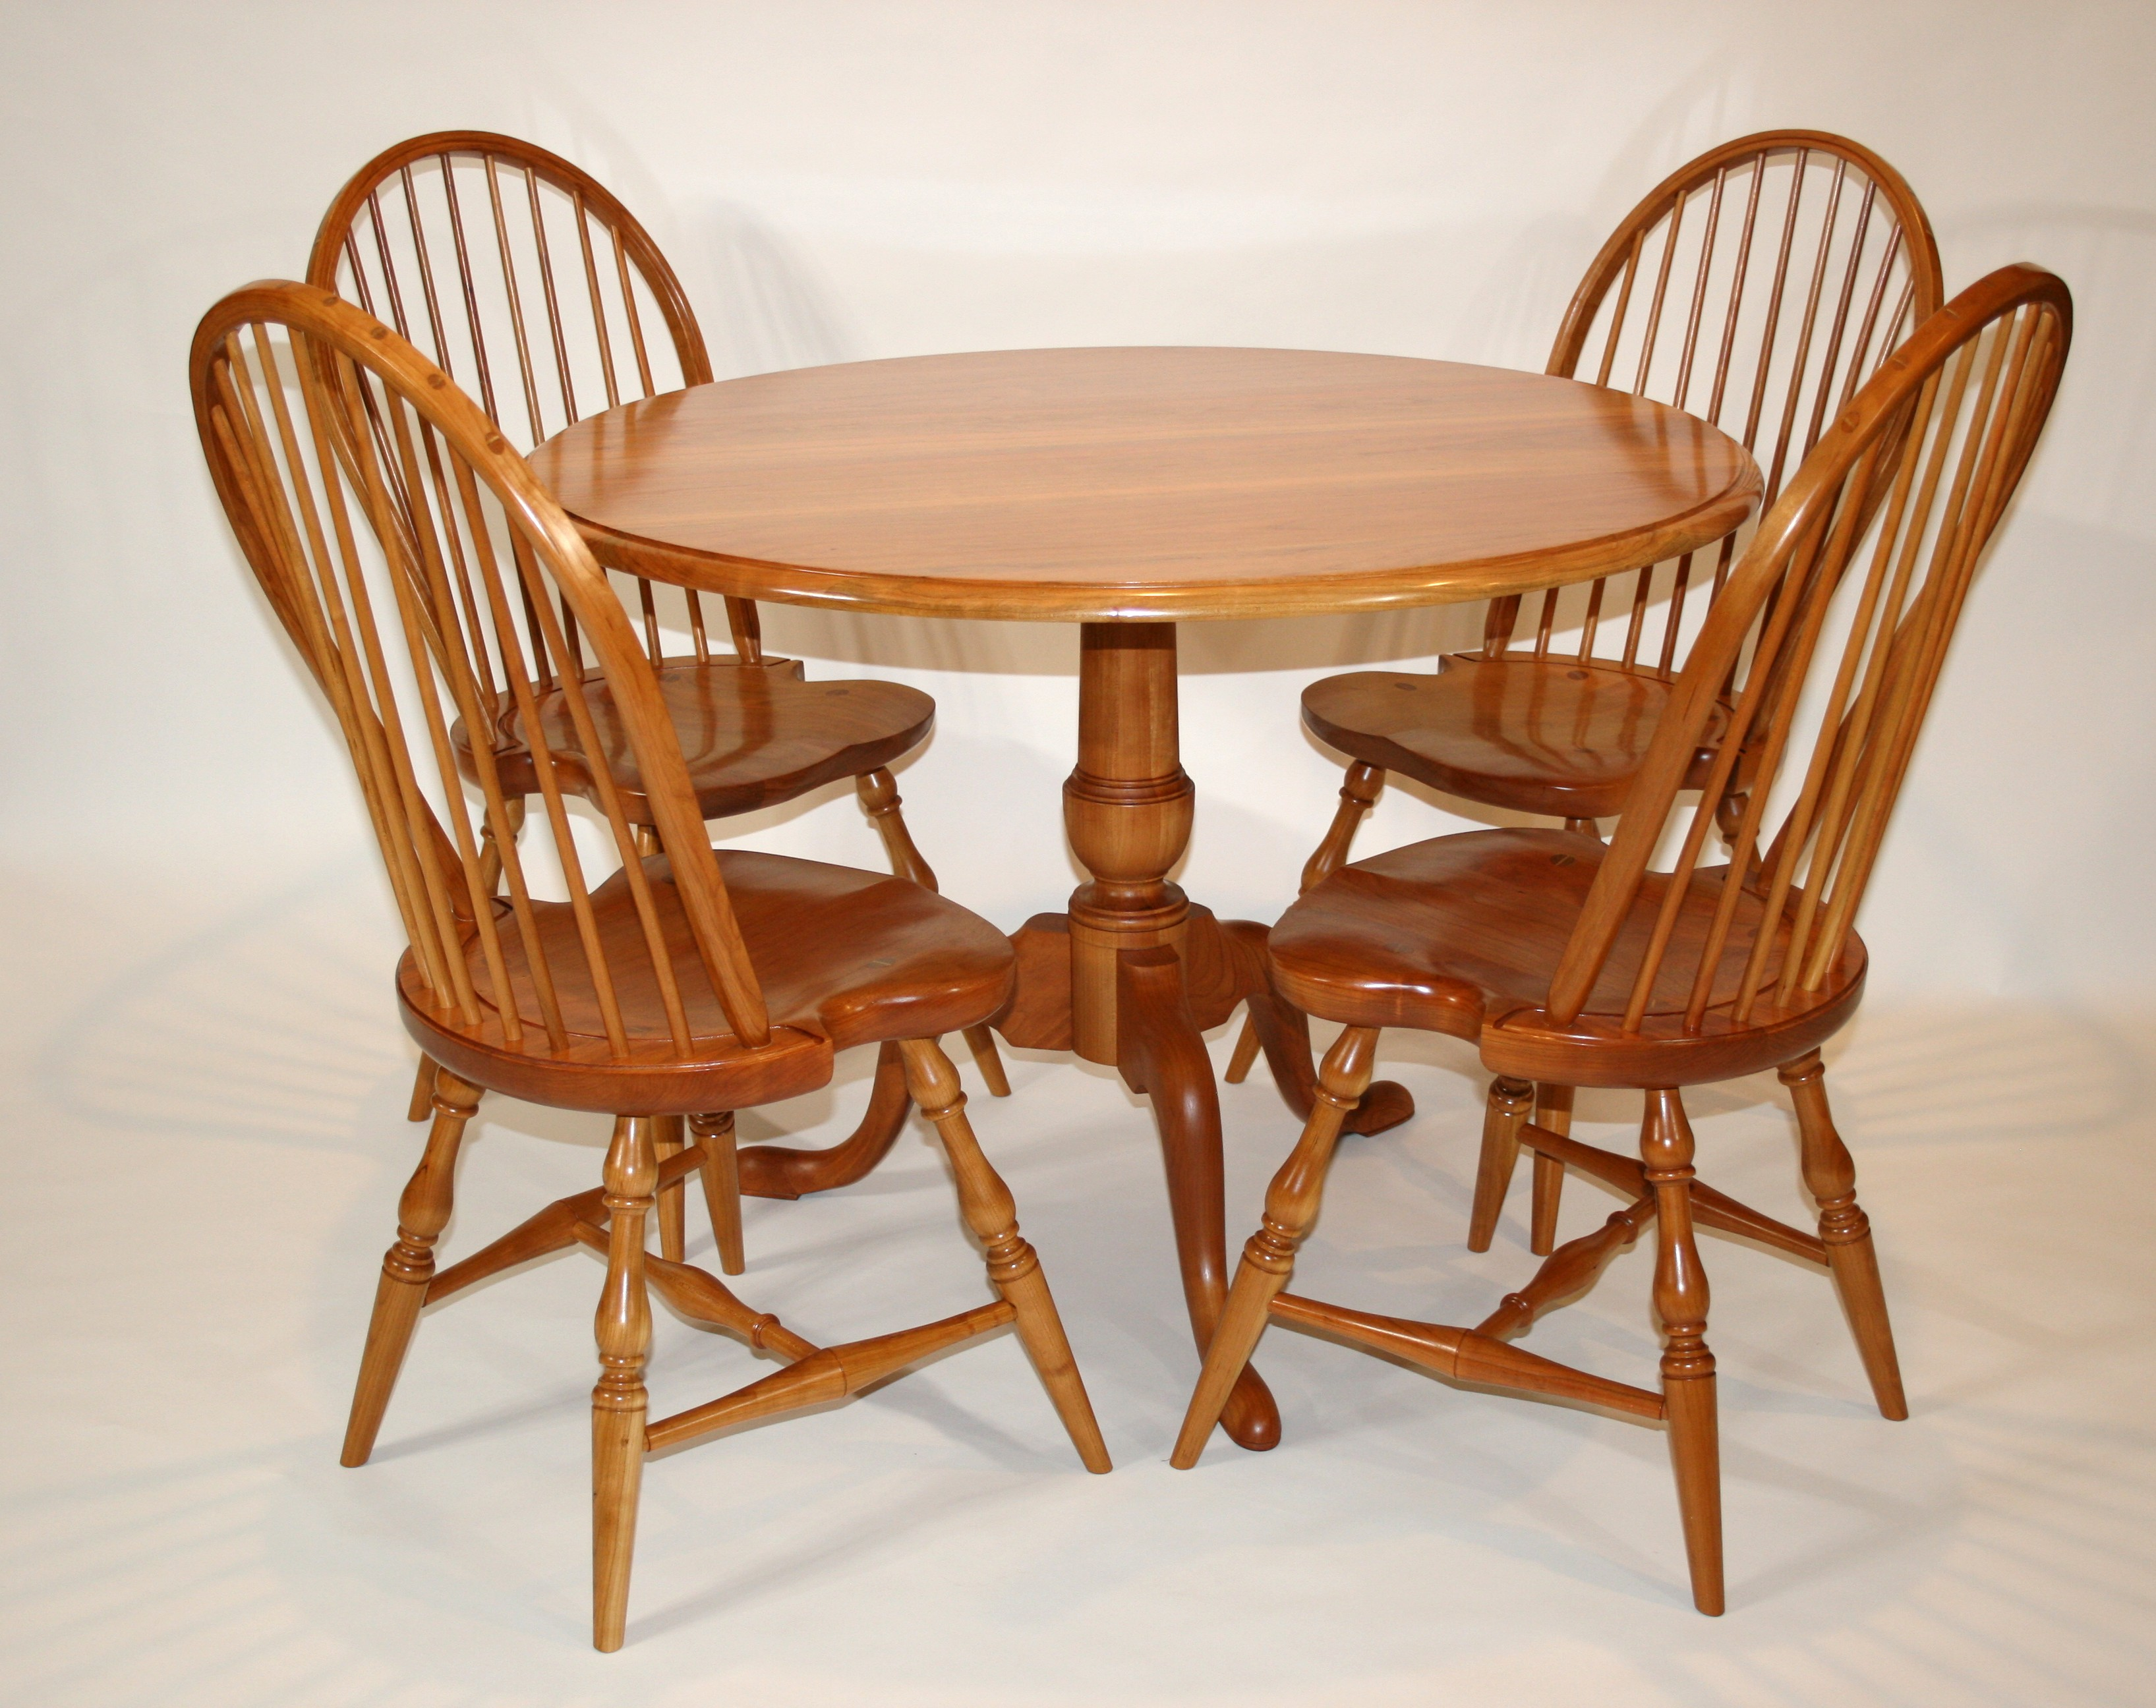 lighthouse woodworking solid cherry dining table with four solid cherry windsor side chairs for a client in winchester virginia finish is danish oil and polyurethane